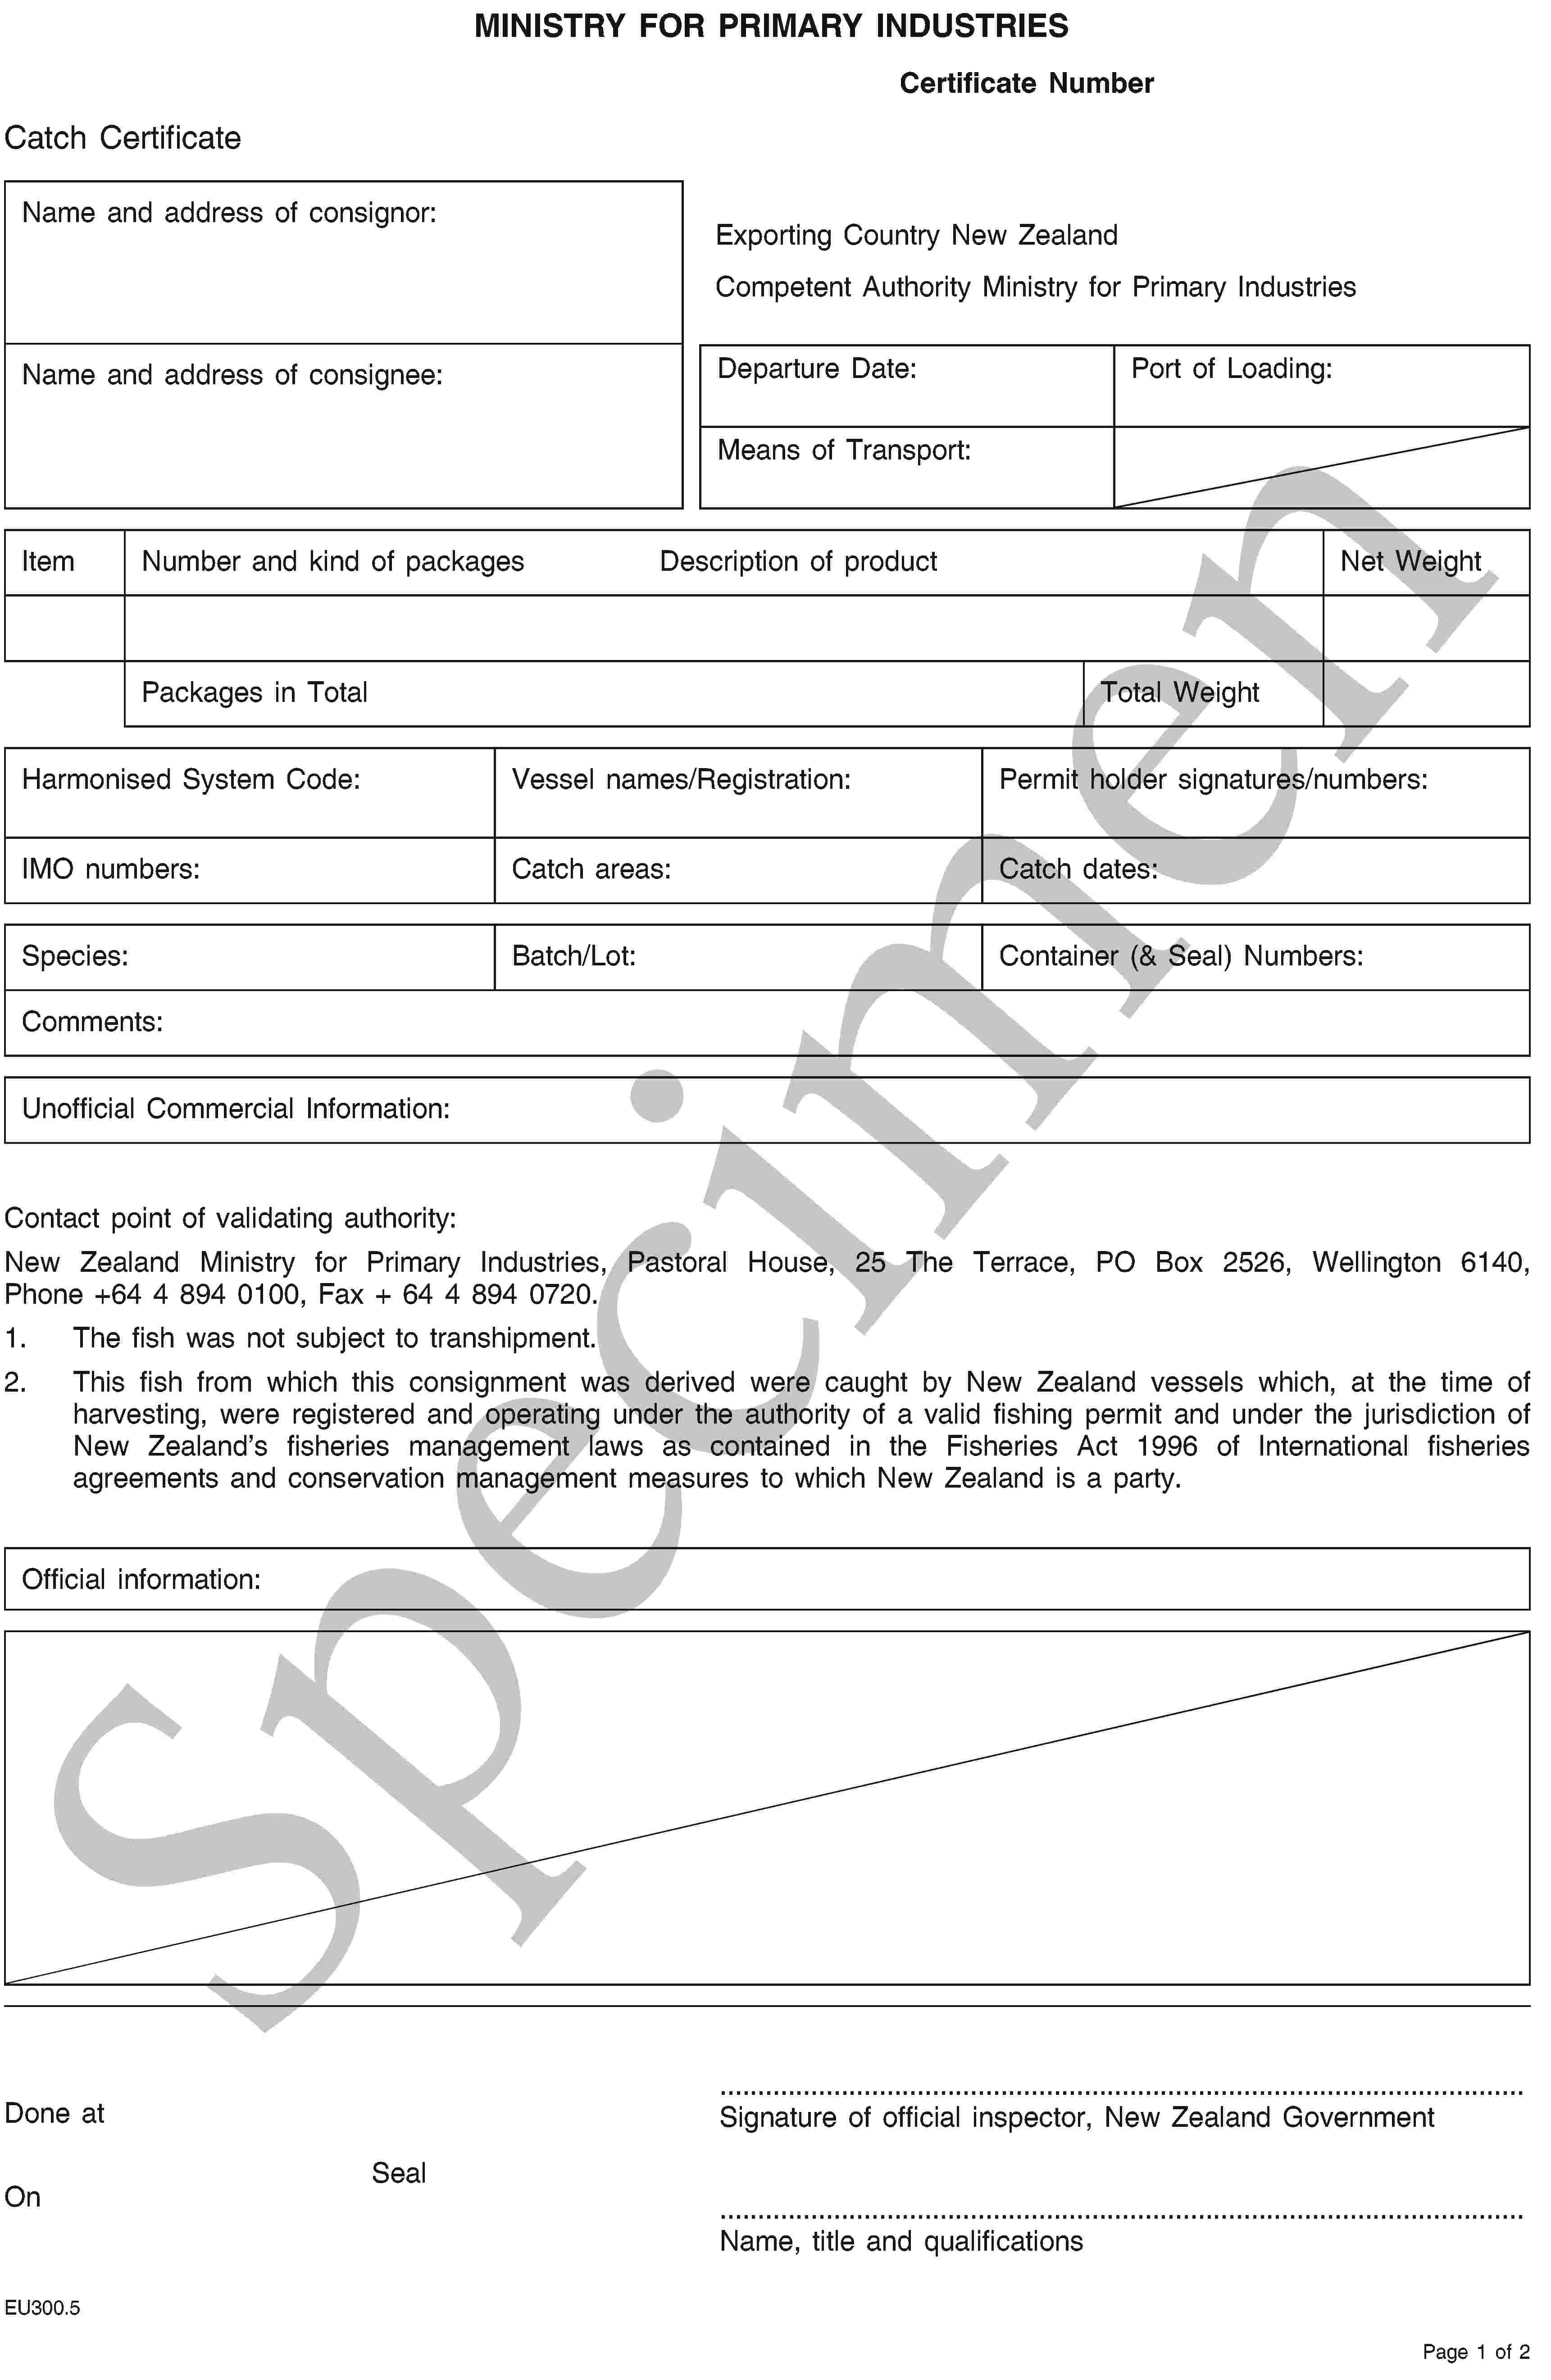 SpecimenMINISTRY FOR PRIMARY INDUSTRIESCertificate NumberCatch CertificateName and address of consignor:Exporting Country New ZealandCompetent Authority Ministry for Primary IndustriesName and address of consignee:Departure Date:Port of Loading:Means of Transport:ItemNumber and kind of packagesDescription of productNet WeightPackages in TotalTotal WeightHarmonised System Code:Vessel names/Registration:Permit holder signatures/numbers:IMO numbers:Catch areas:Catch dates:Species:Batch/Lot:Container (& Seal) Numbers:Comments:Unofficial Commercial Information:Contact point of validating authority:New Zealand Ministry for Primary Industries, Pastoral House, 25 The Terrace, PO Box 2526, Wellington 6140, Phone +64 4 894 0100, Fax + 64 4 894 0720.1. The fish was not subject to transhipment.2. This fish from which this consignment was derived were caught by New Zealand vessels which, at the time of harvesting, were registered and operating under the authority of a valid fishing permit and under the jurisdiction of New Zealand's fisheries management laws as contained in the Fisheries Act 1996 of International fisheries agreements and conservation management measures to which New Zealand is a party.Official information:Done atOnSeal… Signature of official inspector, New Zealand Government …Name, title and qualificationsEU300.5Page 1 of 2